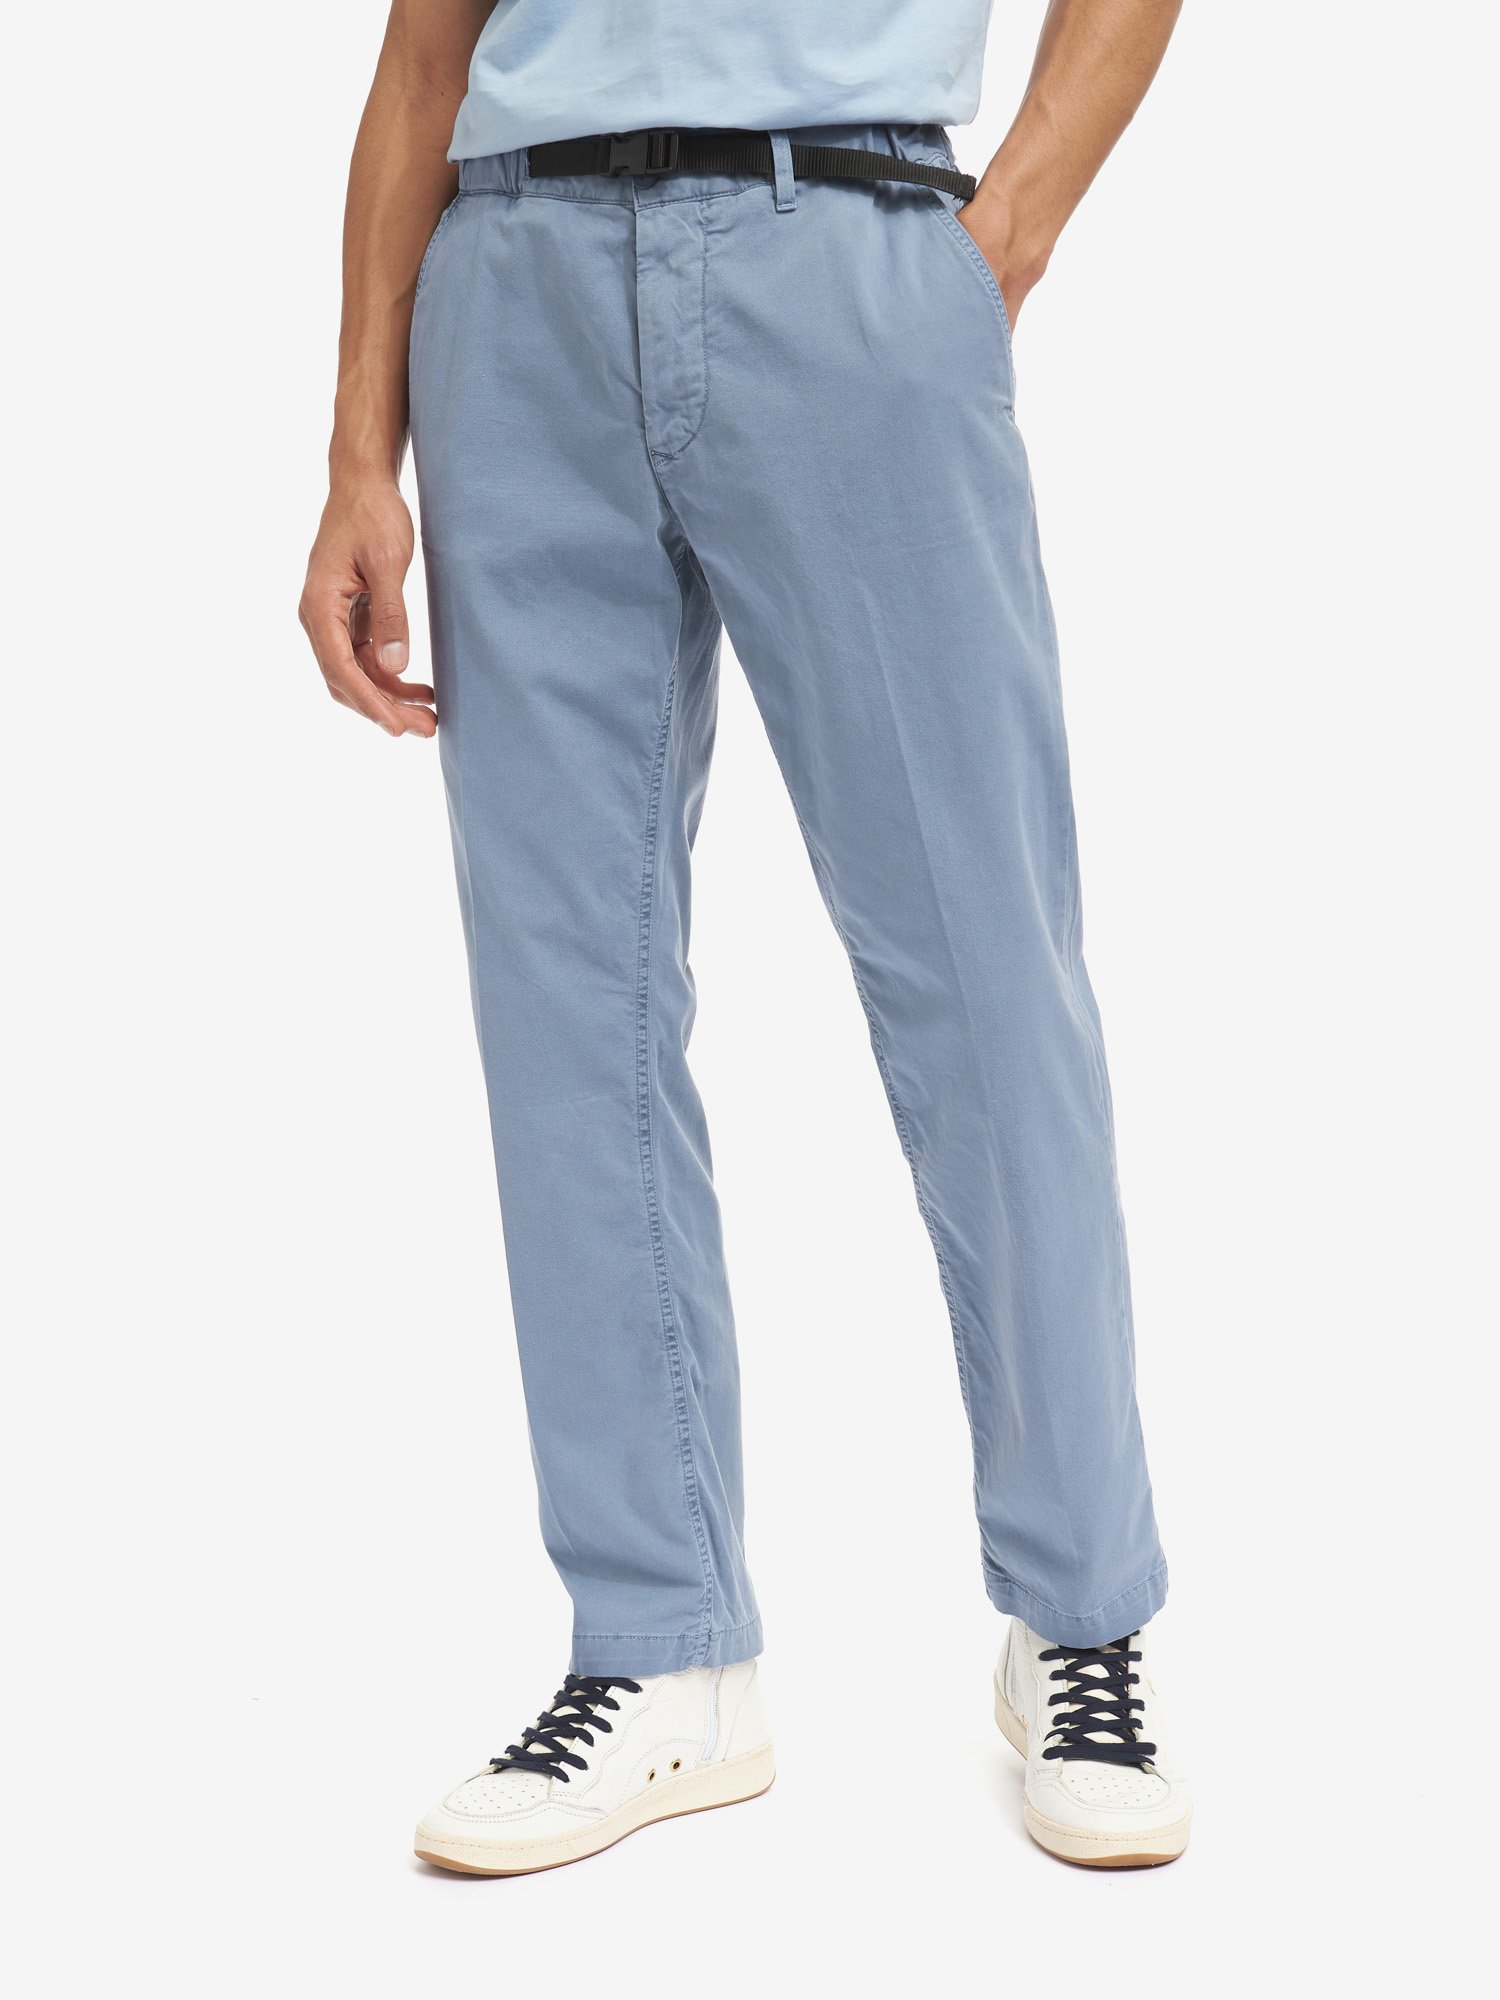 Blauer - TROUSERS WITH BUCKLE - Deep Blue - Blauer